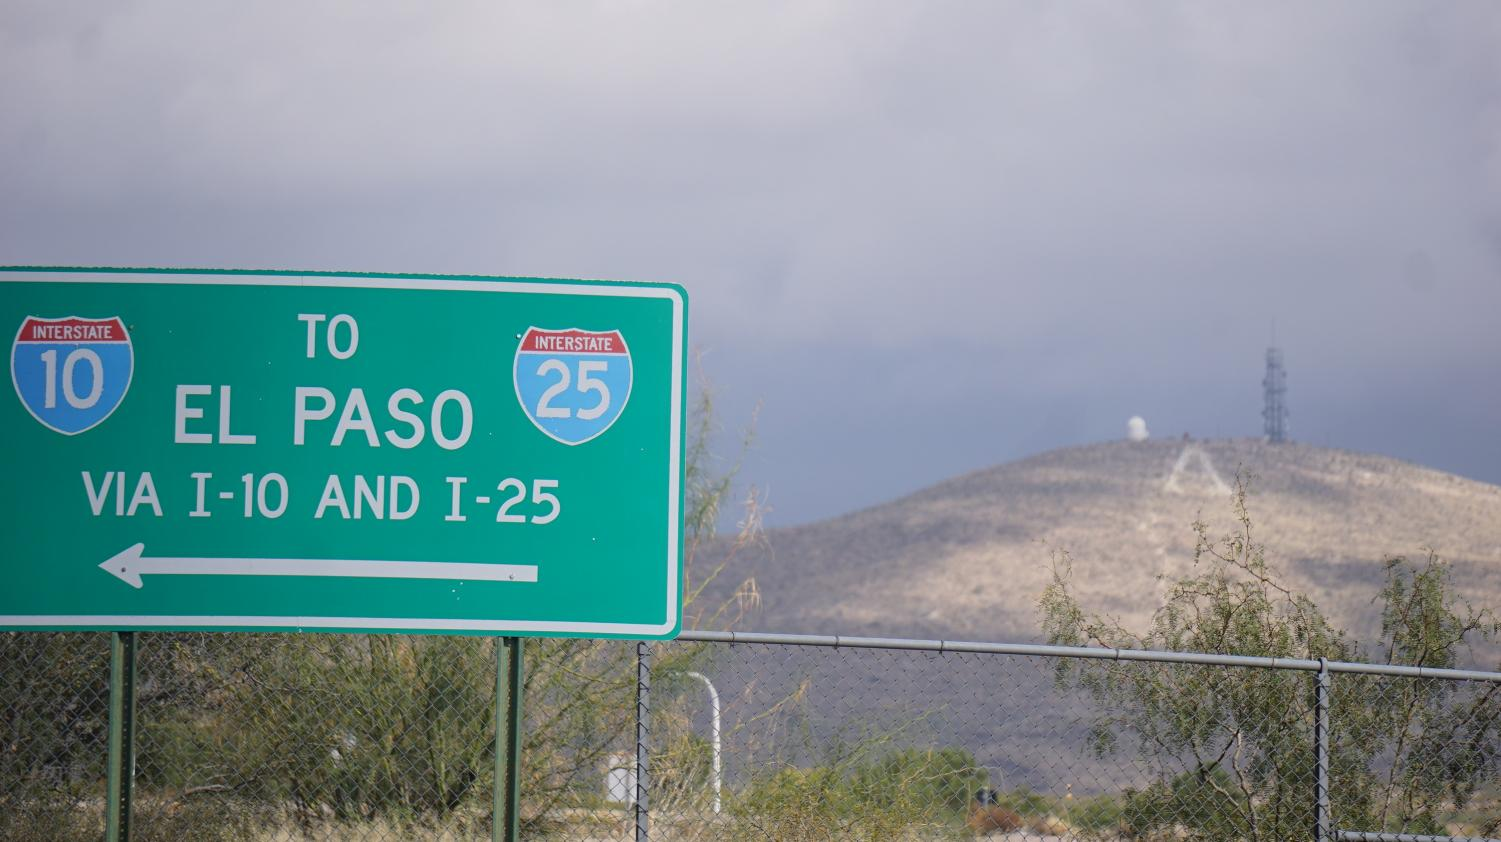 A traffic sign with directions to El Paso near the edge of the campus.